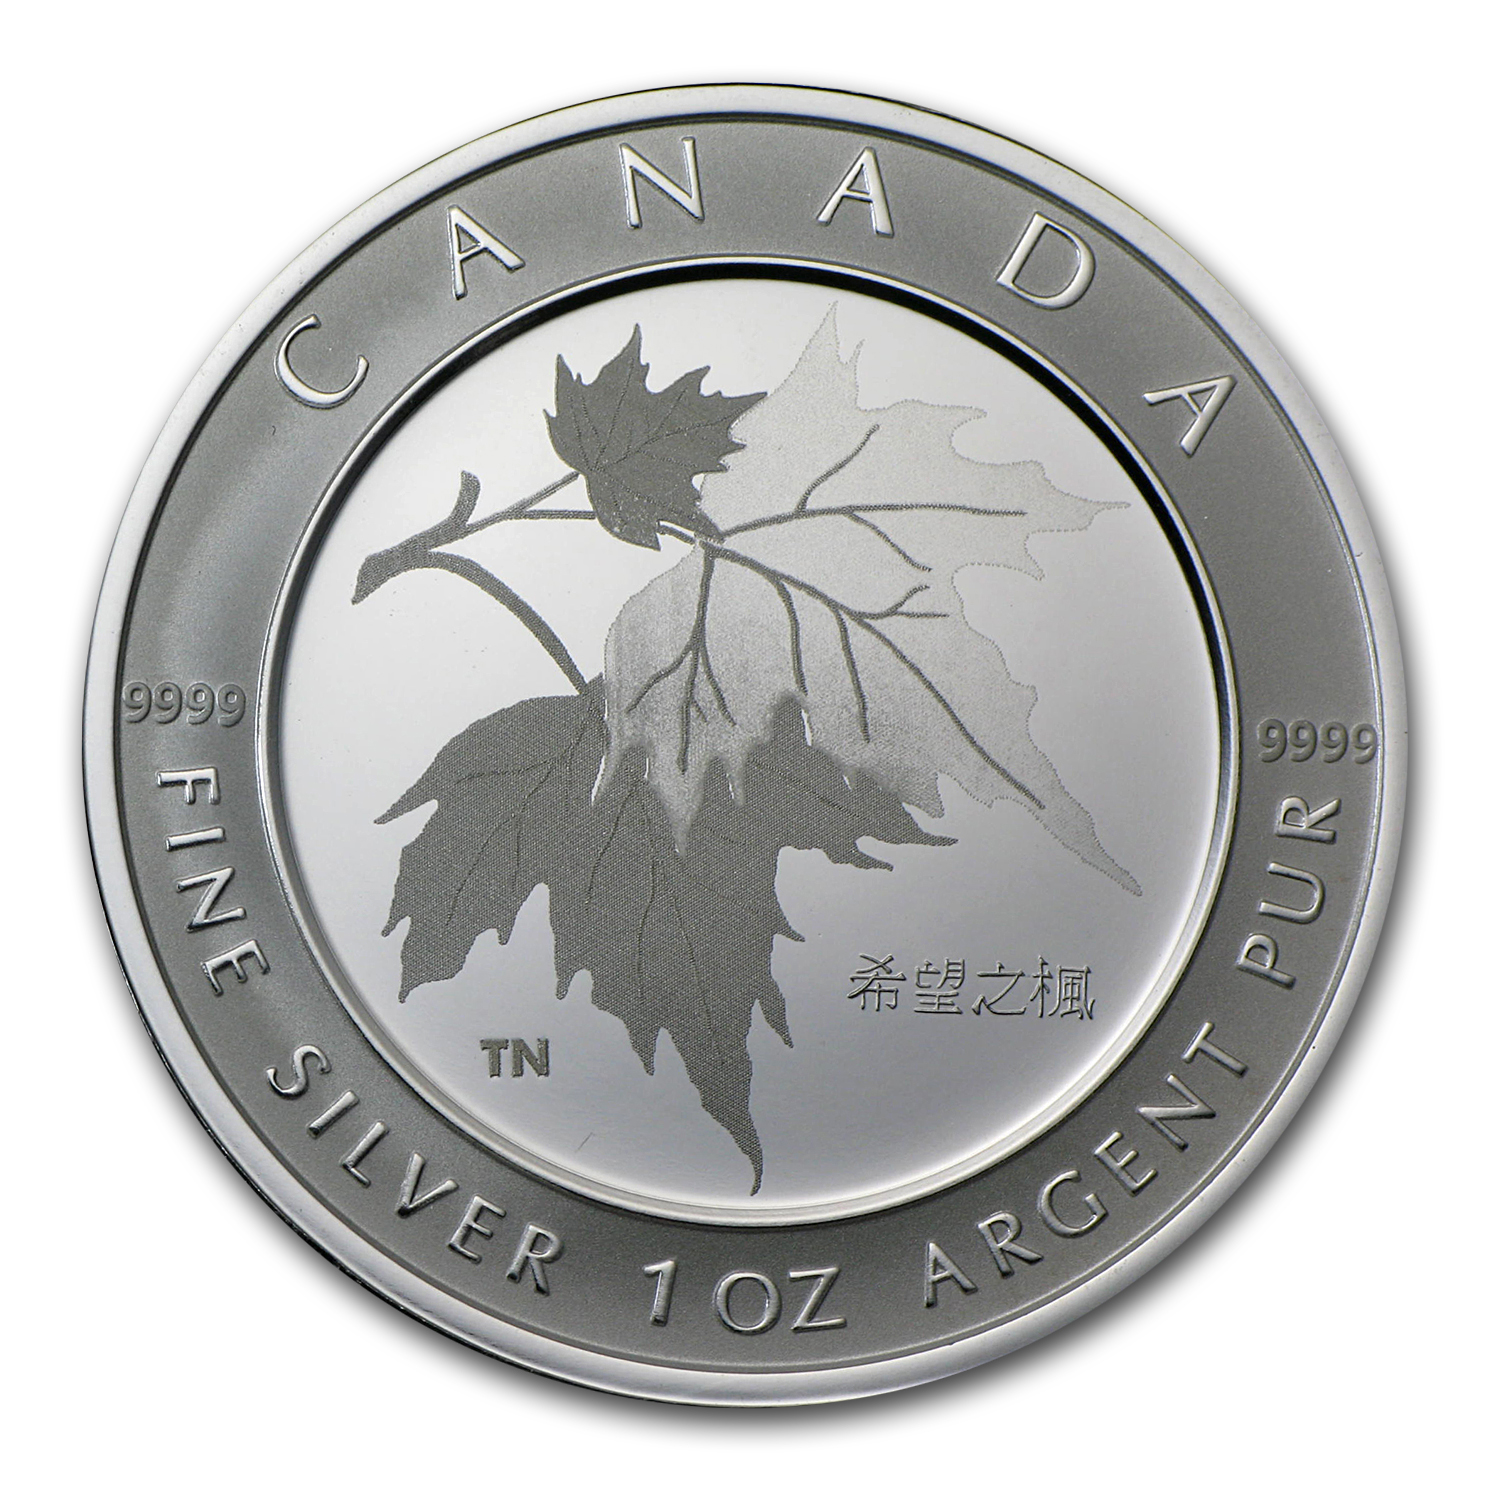 2005 Canada 1 oz Silver $5 Maple Leaf of Hope (w/Box & COA)